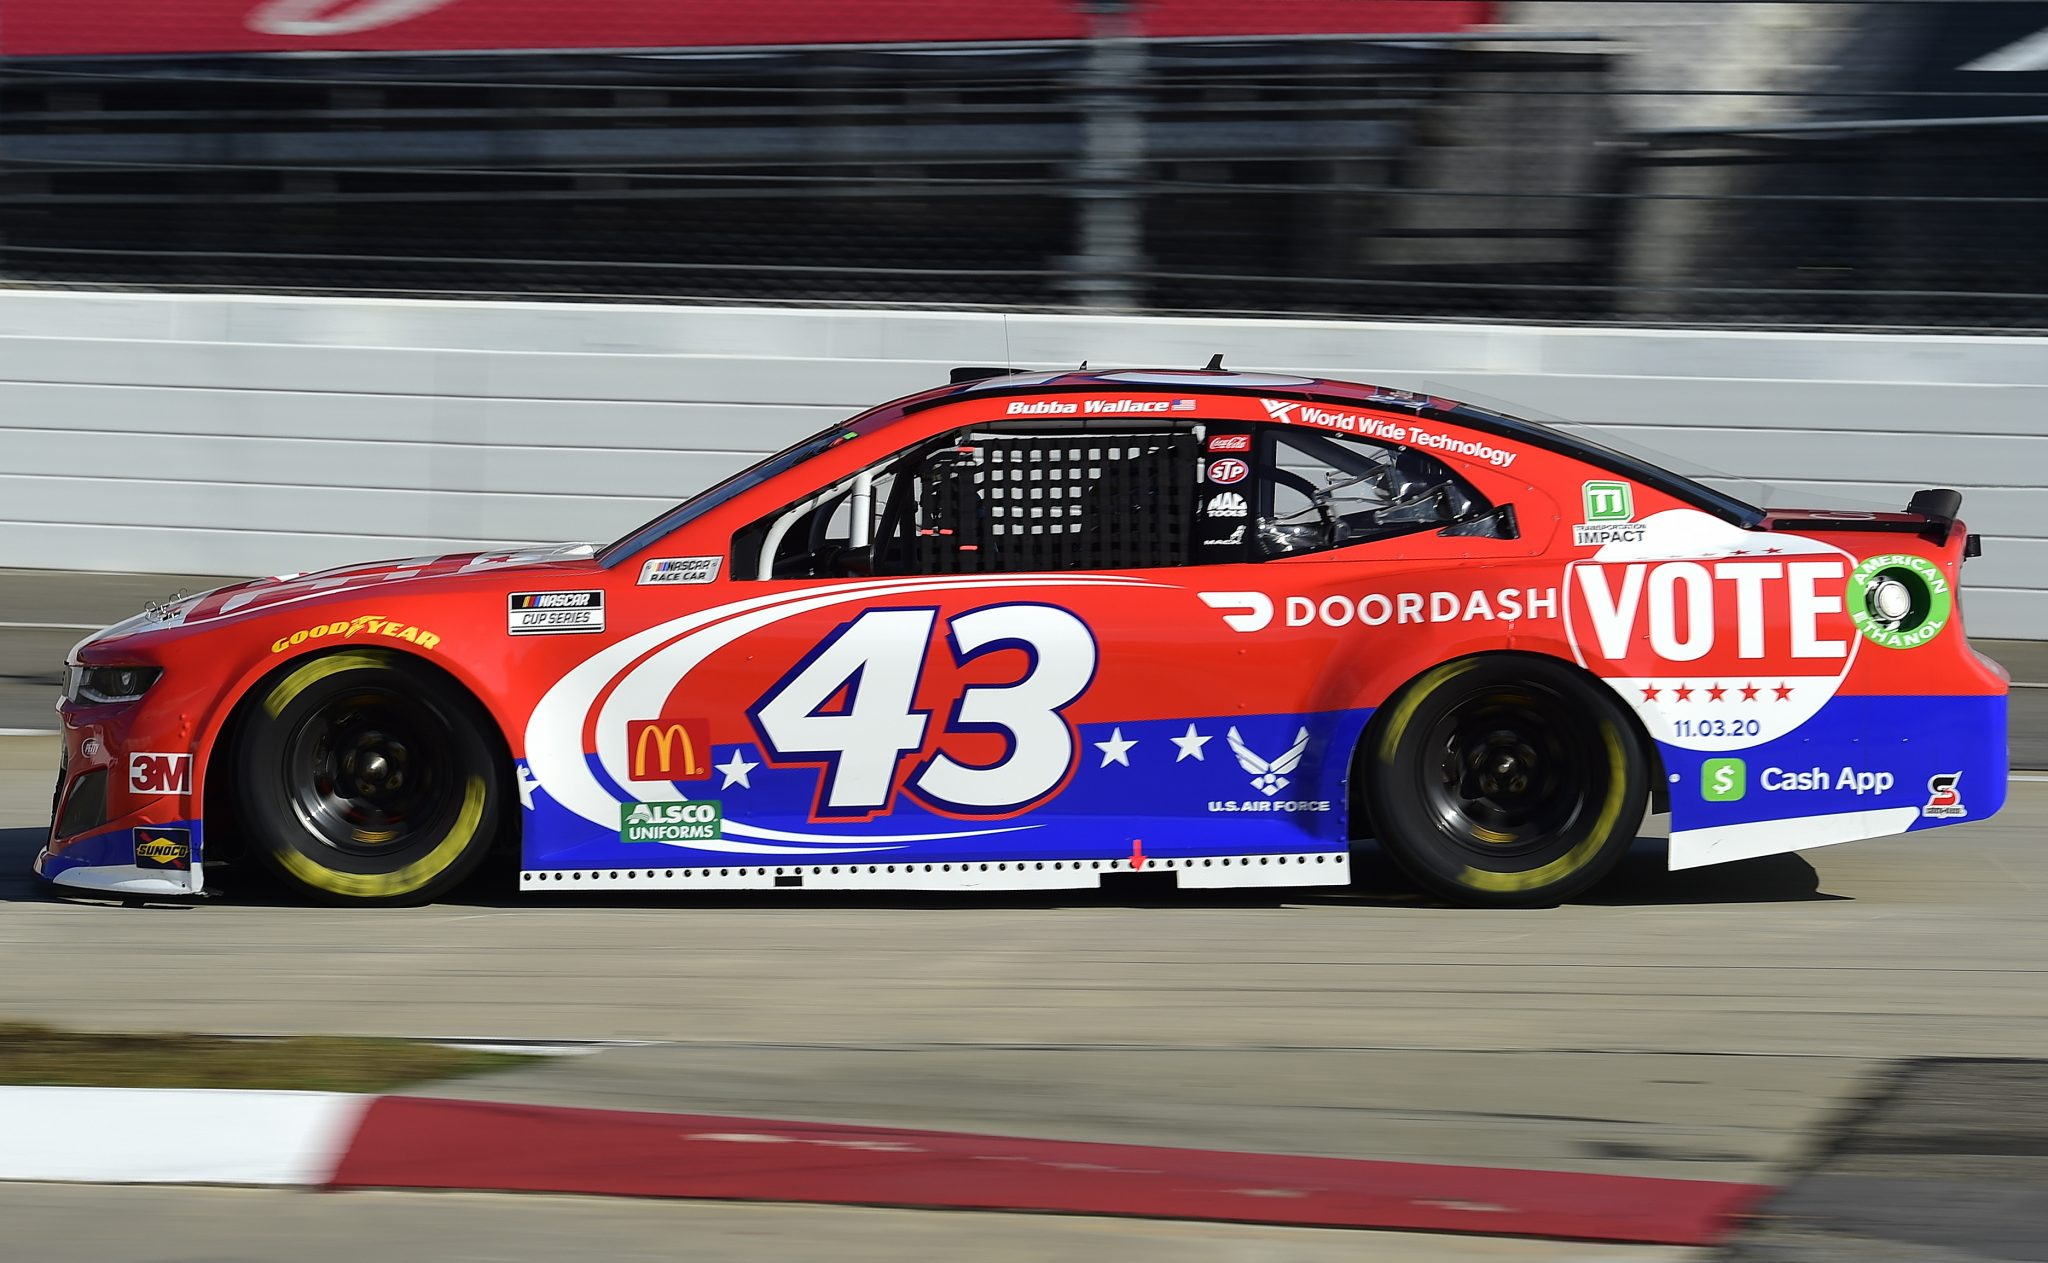 MARTINSVILLE, VIRGINIA - NOVEMBER 01: Bubba Wallace, driver of the #43 DoorDash Chevrolet, drives during the NASCAR Cup Series Xfinity 500 at Martinsville Speedway on November 01, 2020 in Martinsville, Virginia. (Photo by Jared C. Tilton/Getty Images) | Getty Images